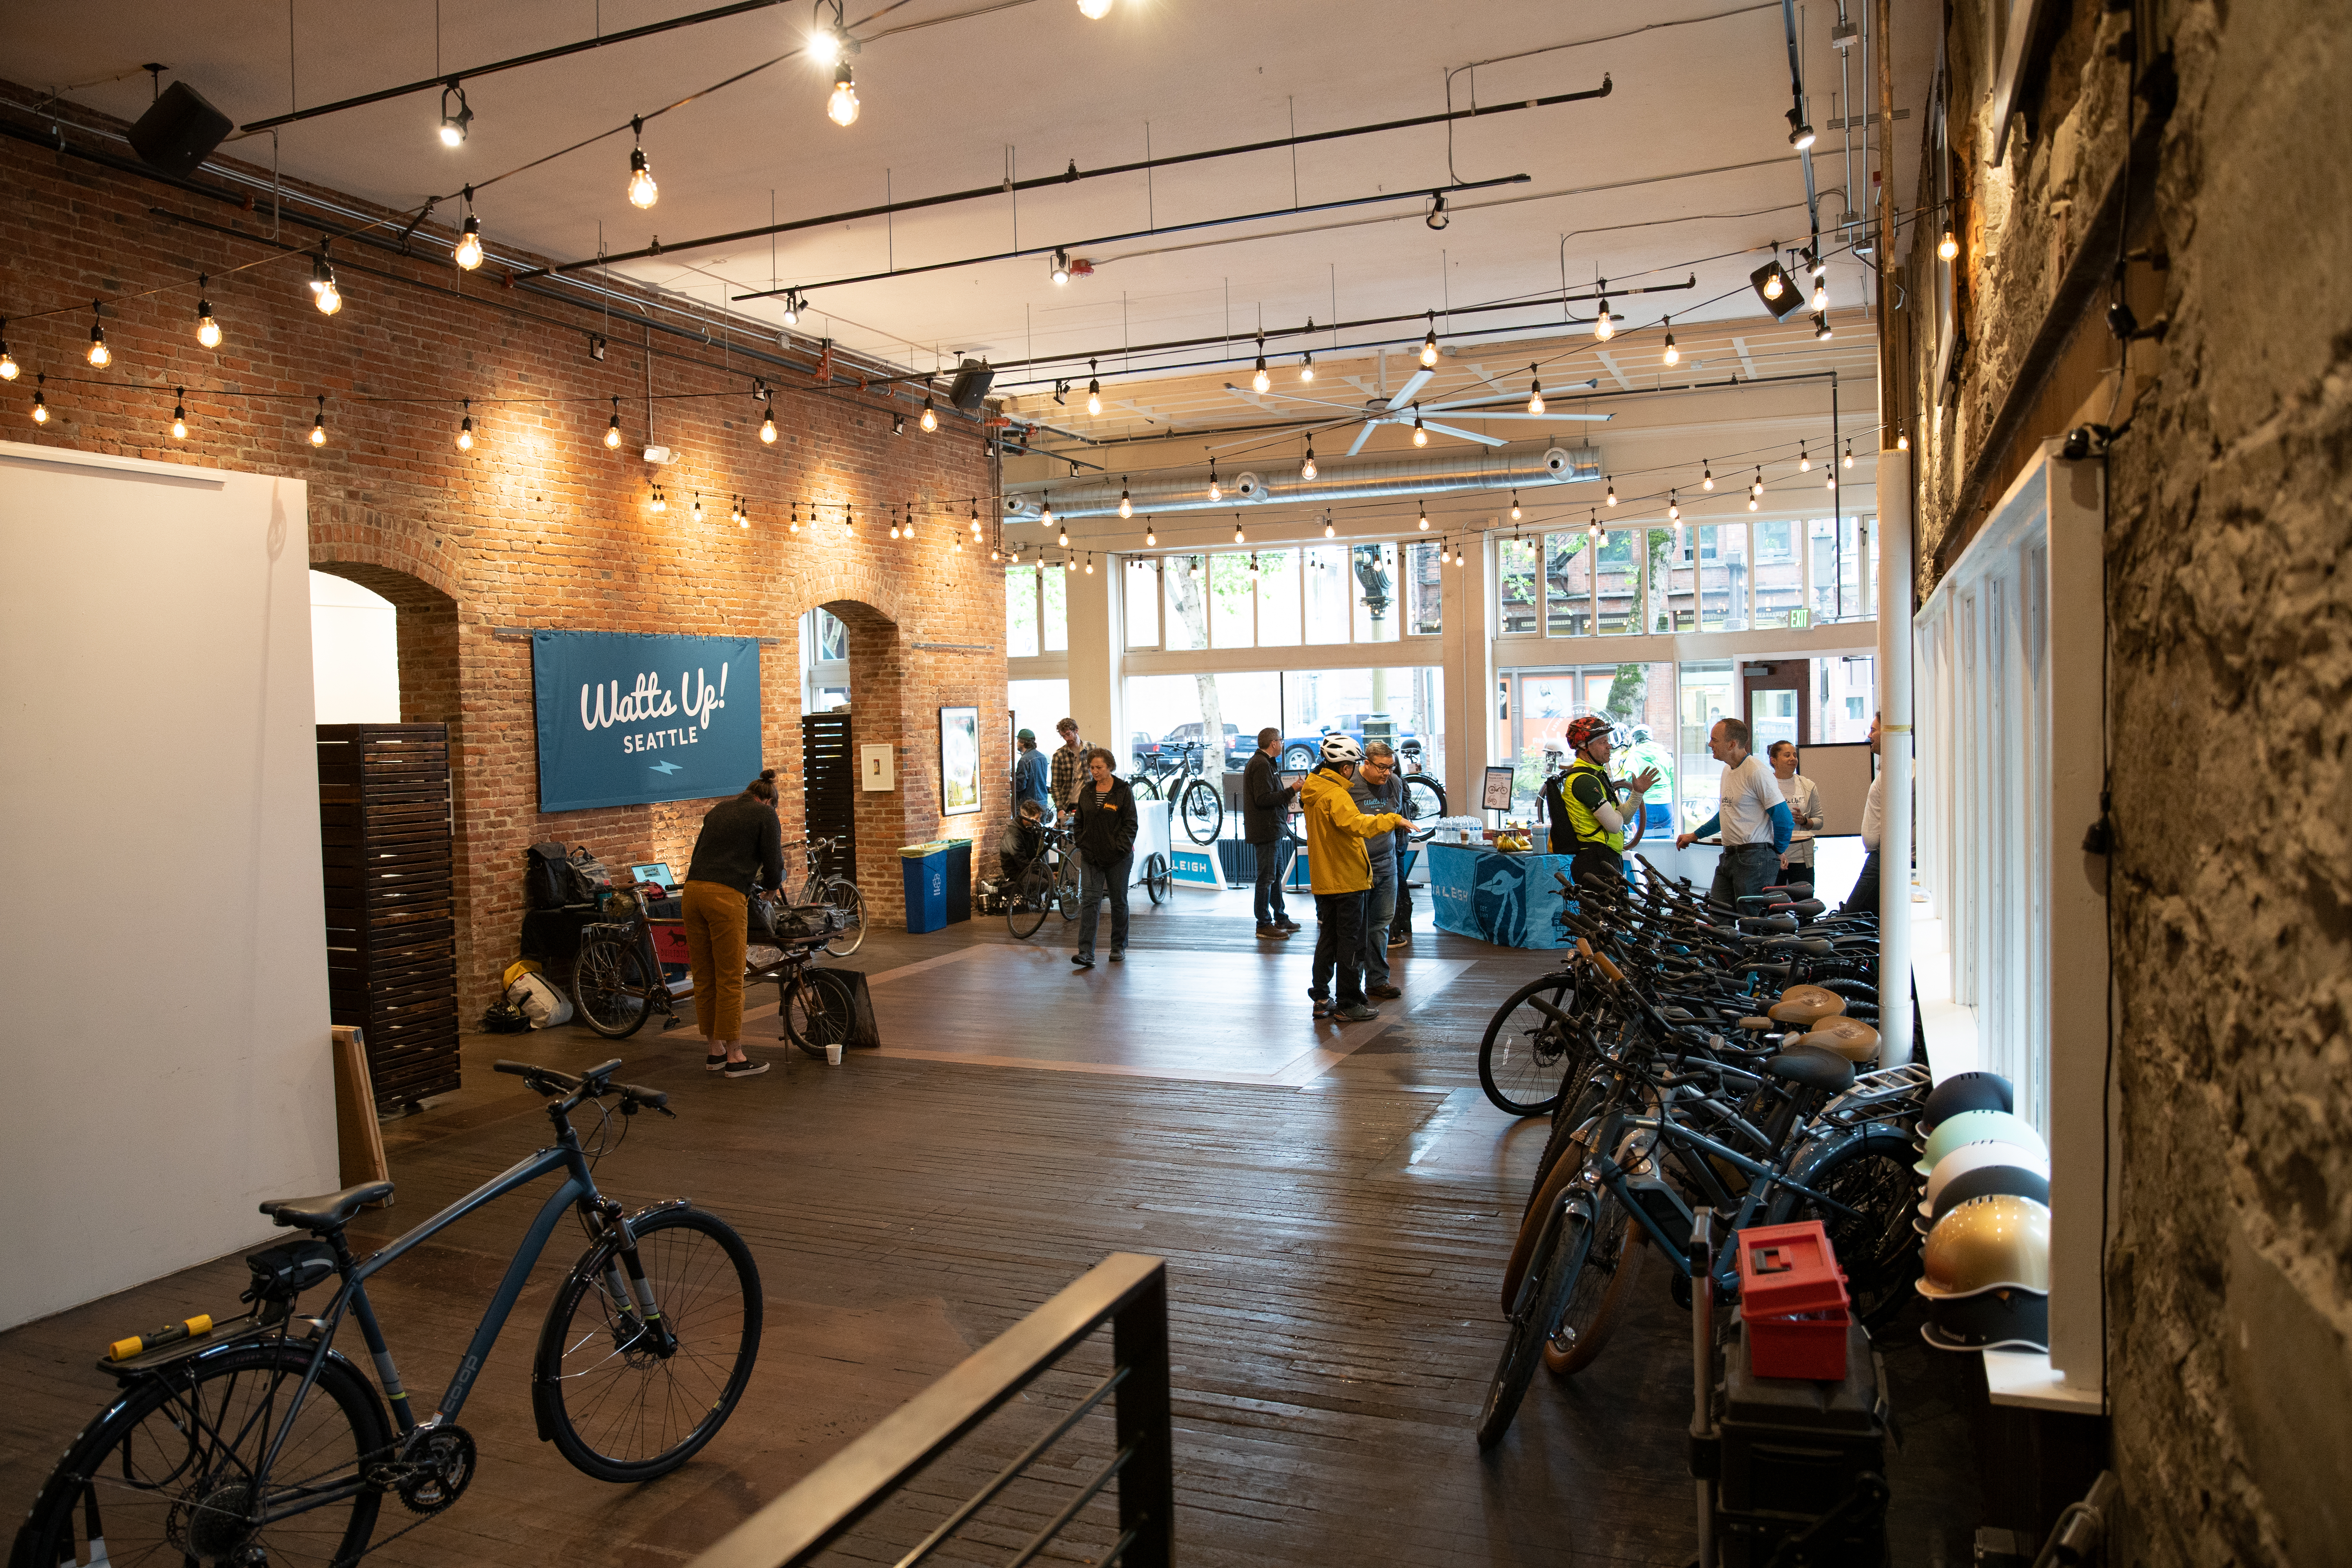 Interior of Watts Up Seattle pop-up shop showing a row of demo e-bikes